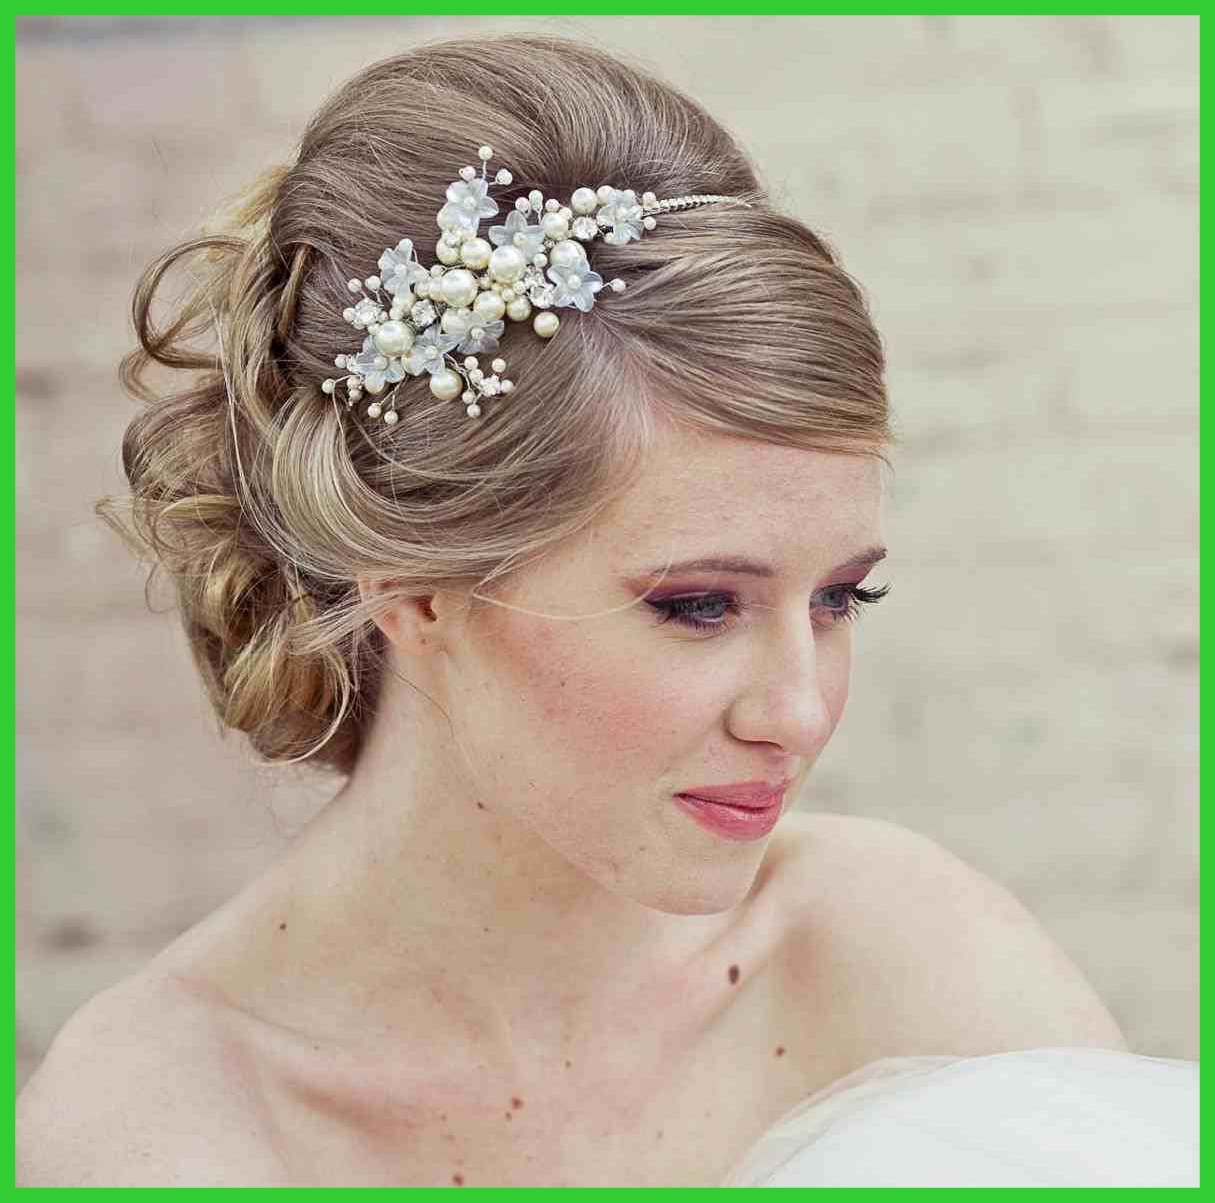 Latest Wedding Hairstyles For Shoulder Length Hair With Veil With Shocking Wedding Hairstyles For Long Hair Updo With Veil The Big (View 10 of 15)